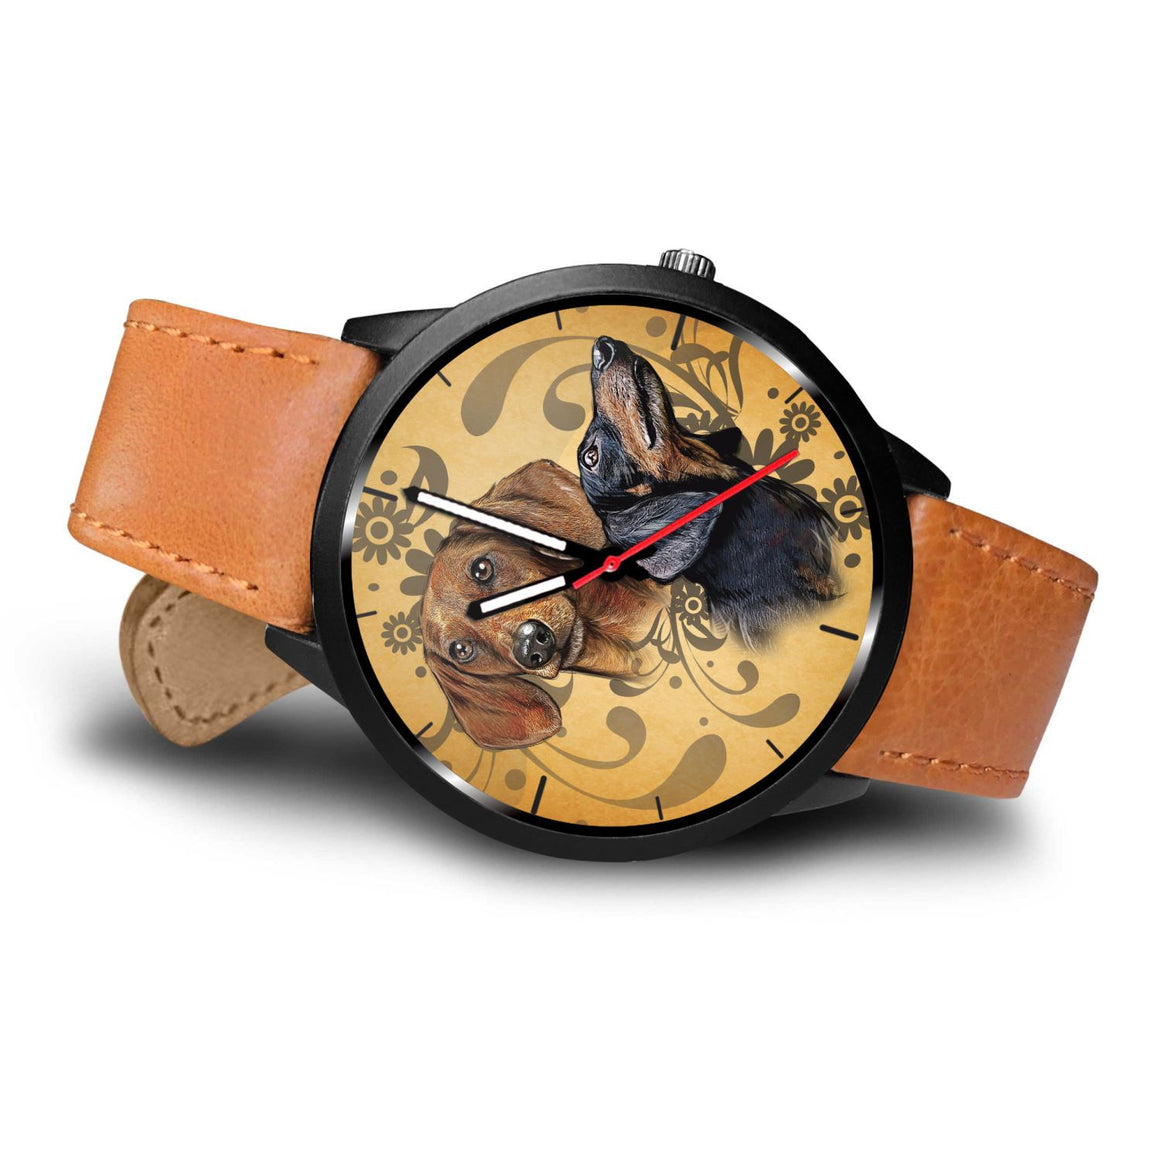 Dachshund Love Themed Watch